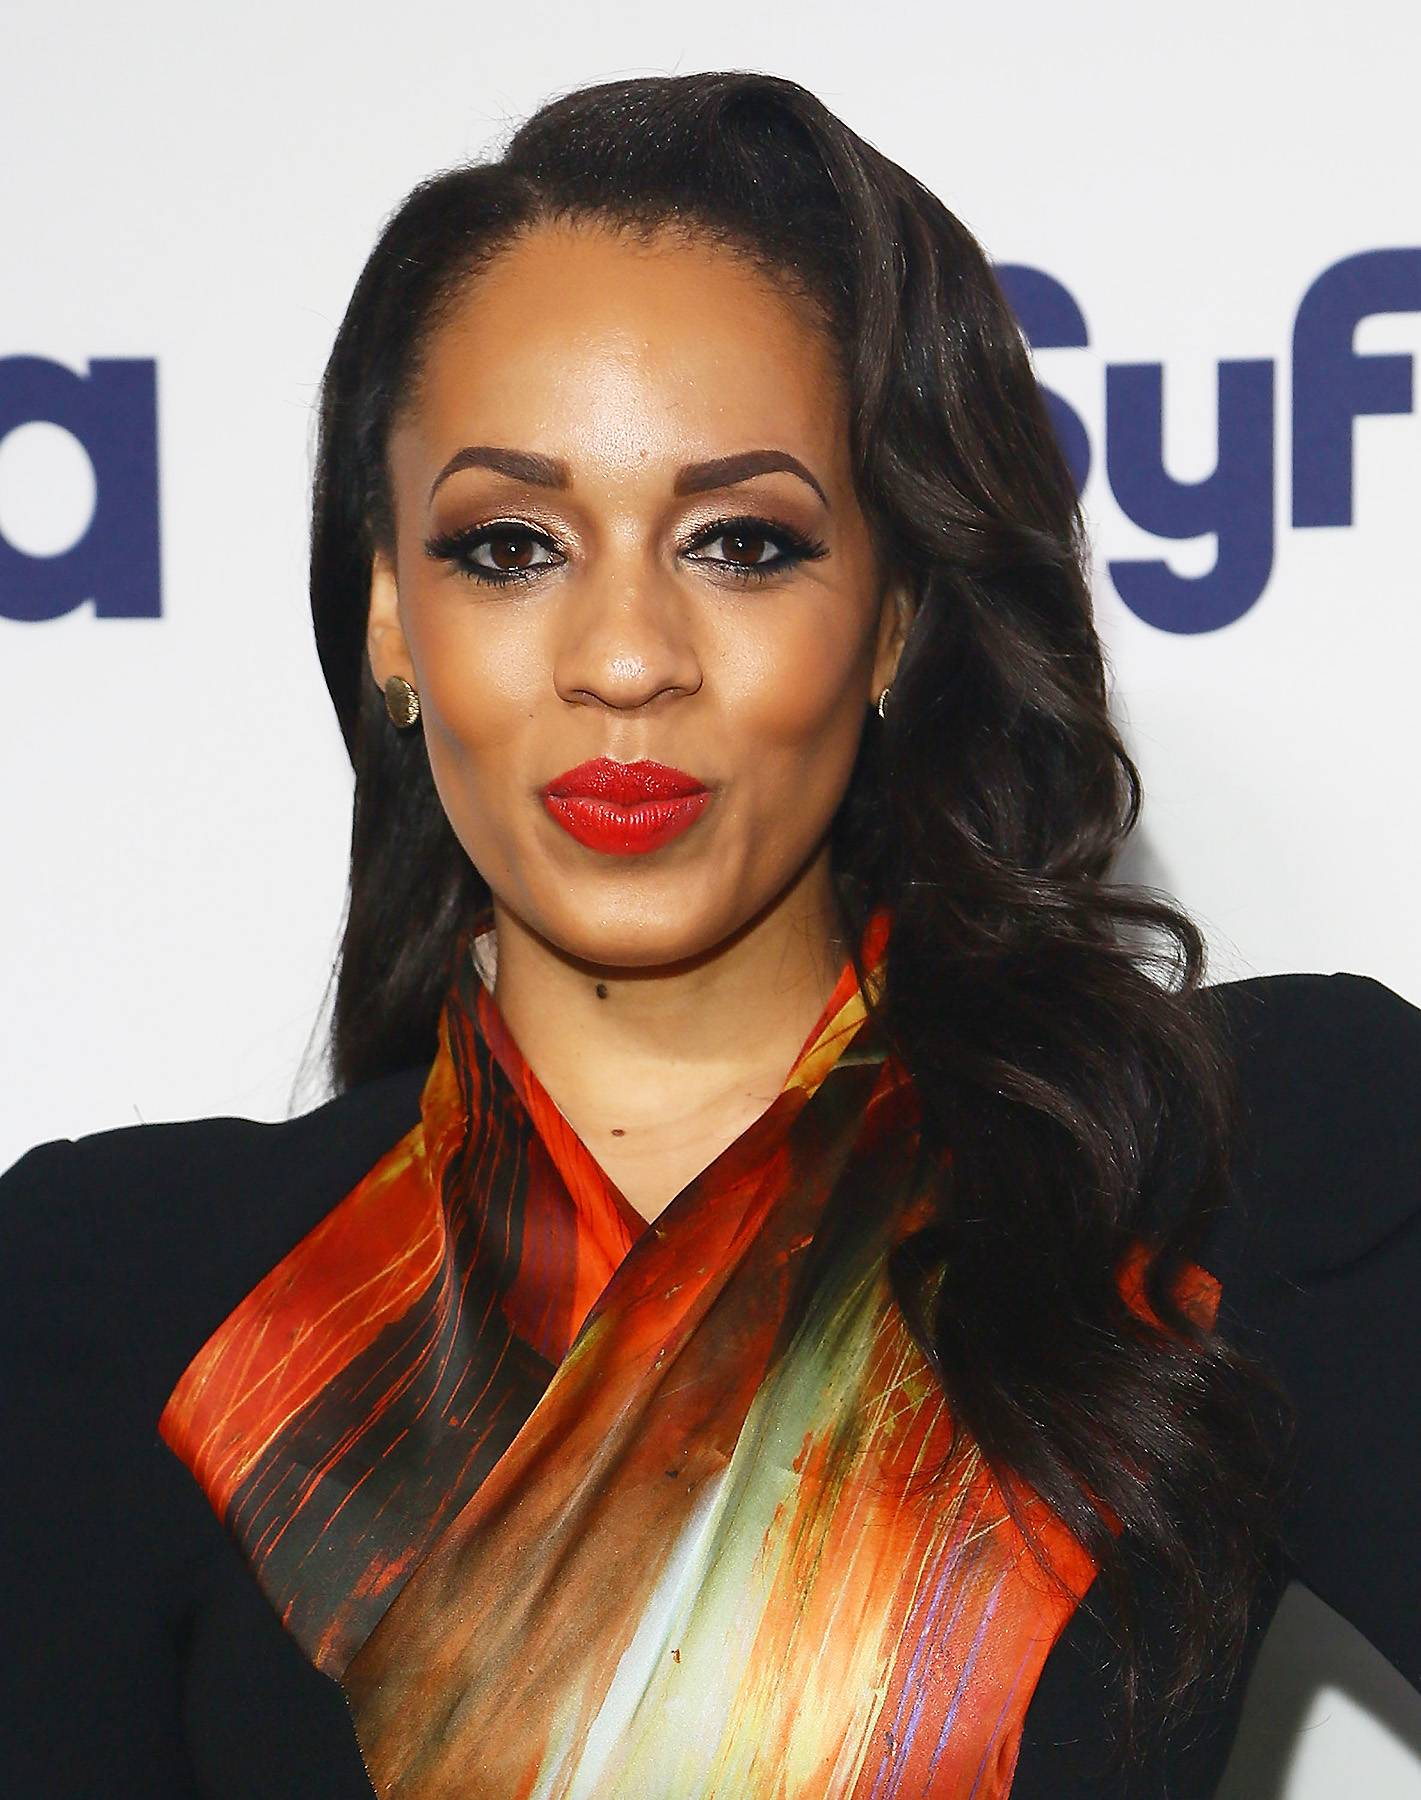 Melyssa Ford Goes Back to the Hospital - By now, you all know that Melyssa Ford was involved in a brawl with her Blood Sweat and Heels co-star Geneva Thomas on Monday. Thomas was charged with felony assault for smashing a bottle over Ford's head. Ford had to get staples in her head to close the gash and it was also reported that she cut her foot on glass.   Fast forward a couple days later, and Melyssa Ford was spotted headed back to the hospital in a wheelchair, most likely for a follow up appointment. She had a big bandage on her head and her foot was wrapped up. TMZ's paparazzi tried to get information out of Ford about what's going to happen next but she was mum. All she mentioned is that there's an on going investigation. From the looks of things, Ford looks really banged up, so Geneva might be in really hot water. See for yourself here.  (Photo: Astrid Staw...